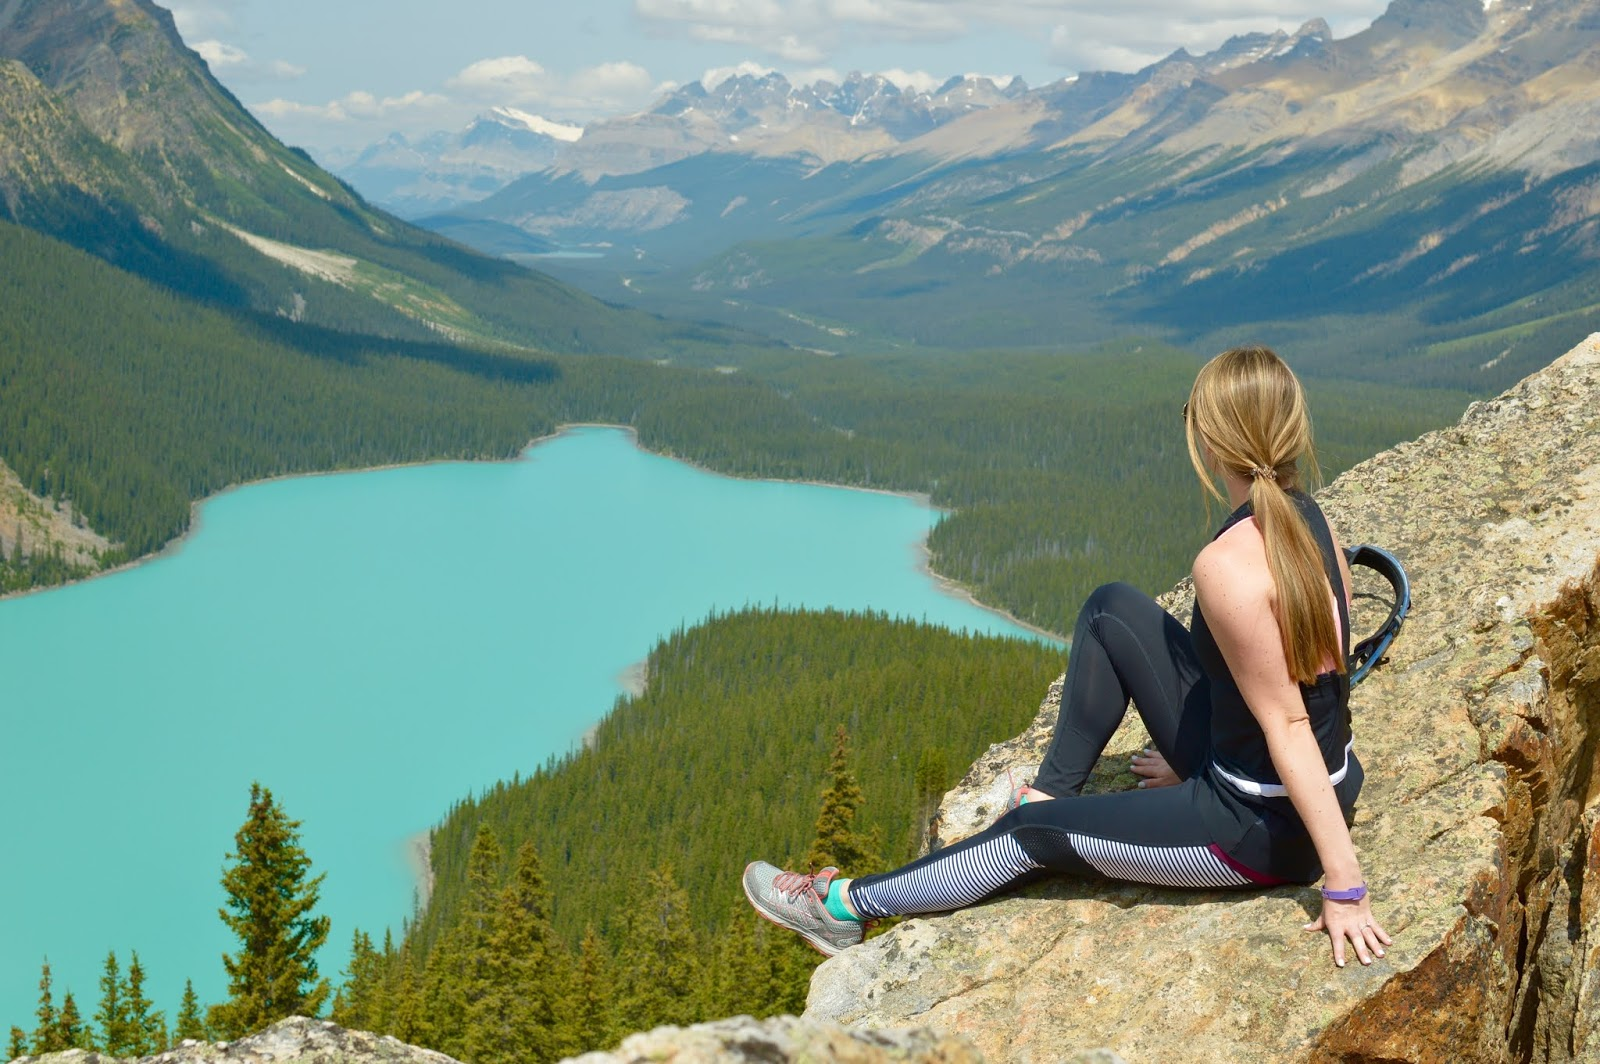 Views from Peyto Lake | Must see places in Banff | Peyto Lake Picture Spot | Where to go at Peyto lake | Banff Itinerary | A memory of us